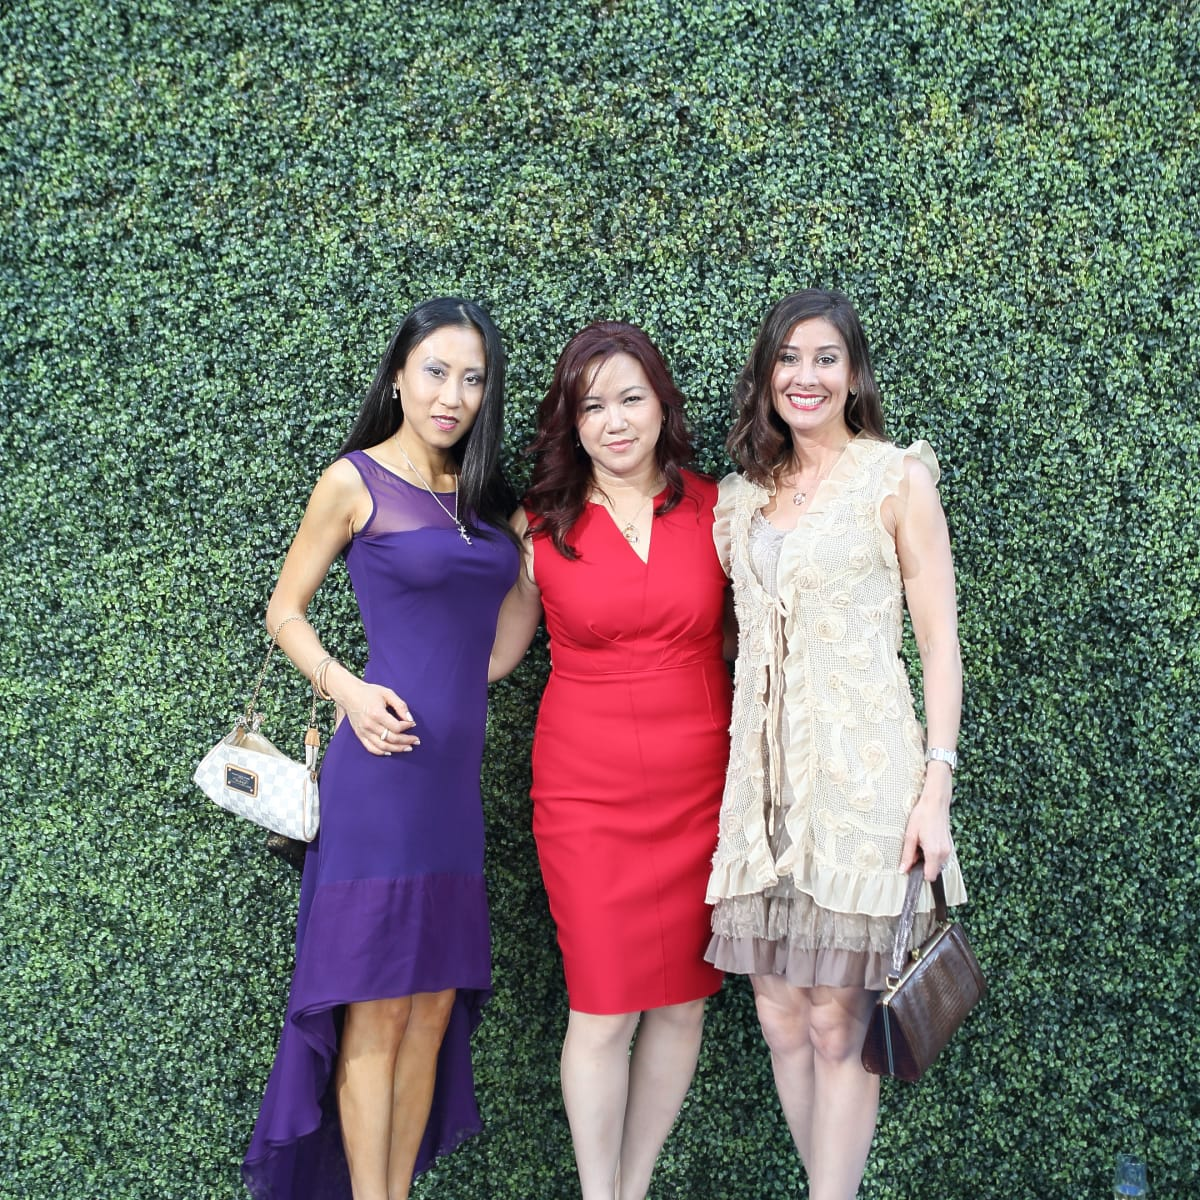 News, Shelby, Know Autism at David Peck, Sept. 2015, Dr. Lily Zhang, Tammy Tran Nguyen, Perri Kay Palermo